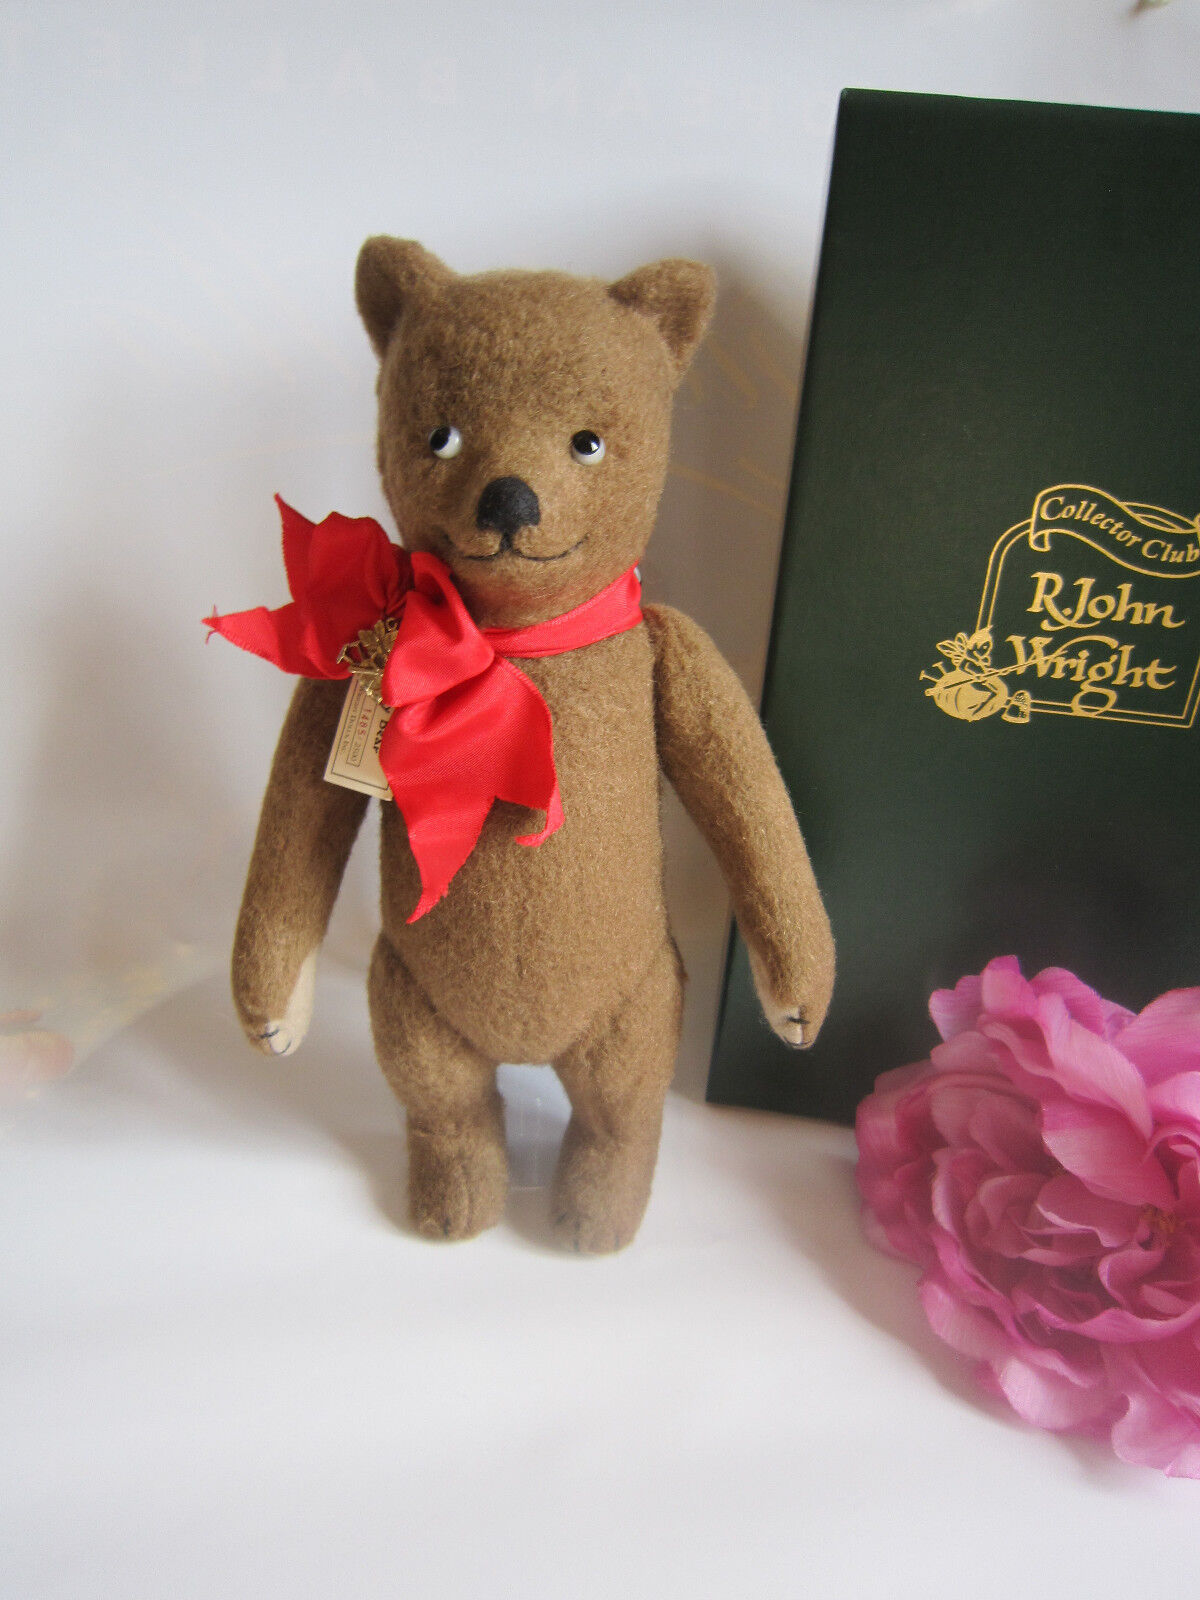 R John Wright Teddy Bear. Ltd. Amazing. Perfect. Rare.